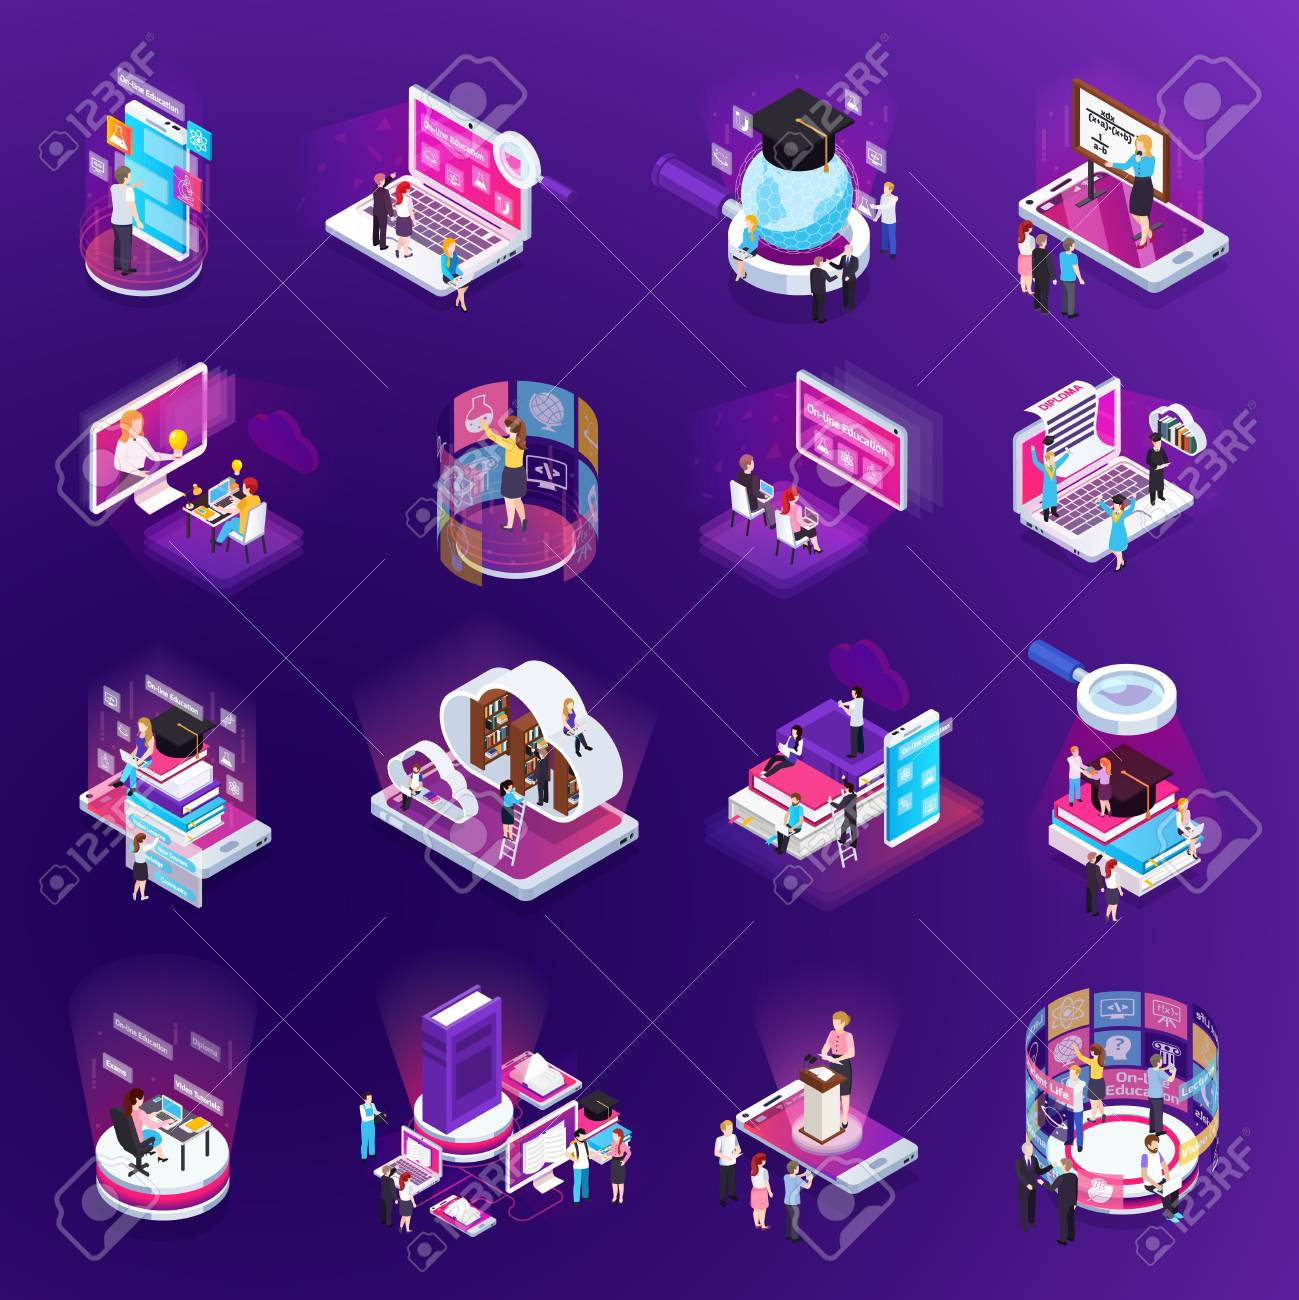 E-learning online training education virtual library distant tutors glow isometric icons set purple background vector illustration - 114796812